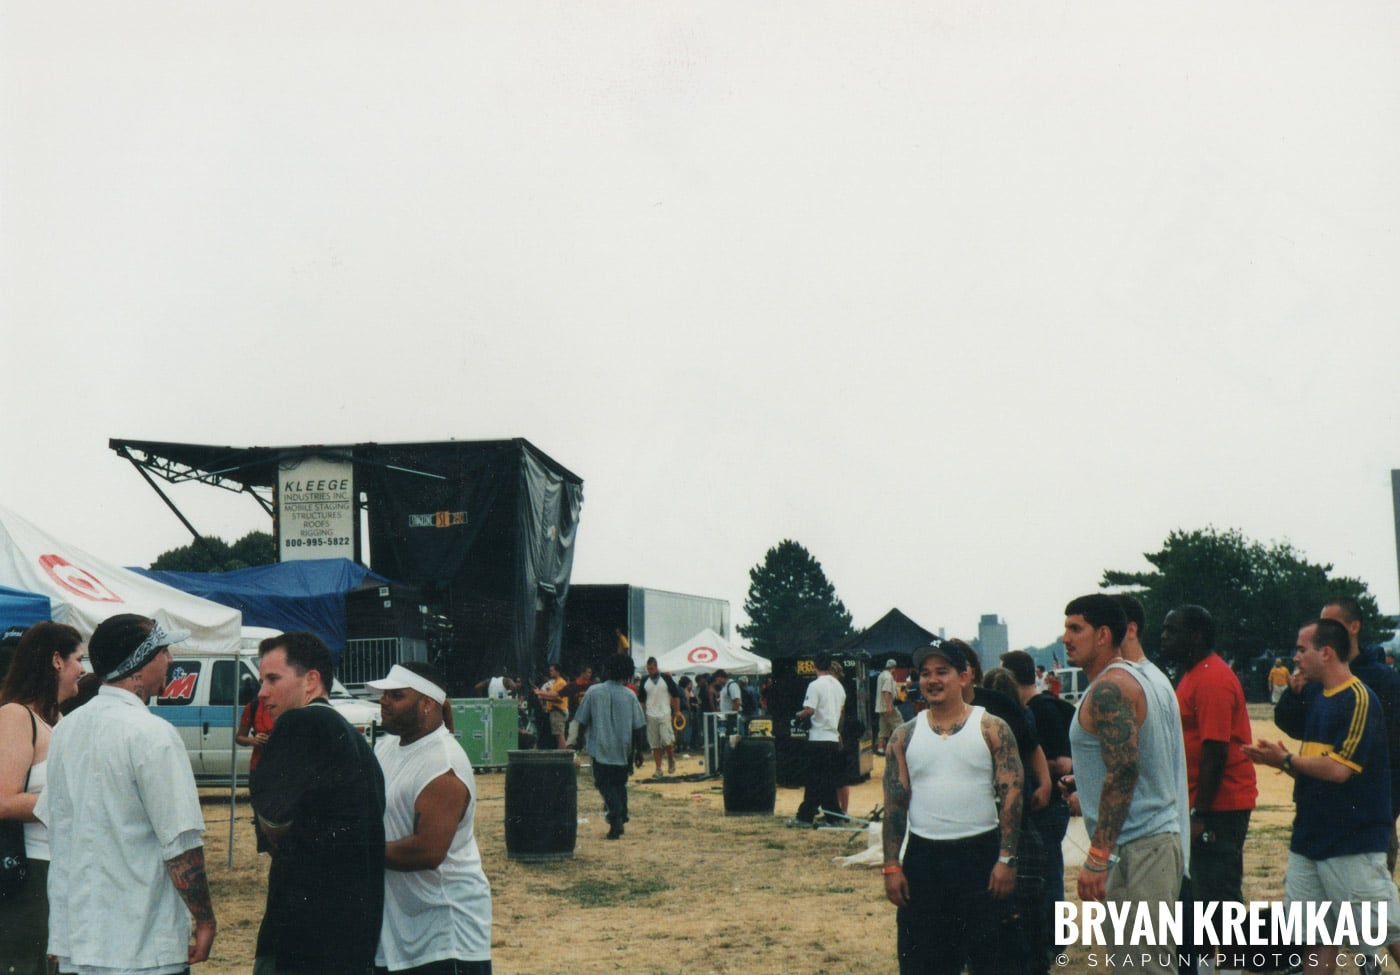 Crowd Shots @ Vans Warped Tour, Randall's Island, NYC - 8.4.01 (4)